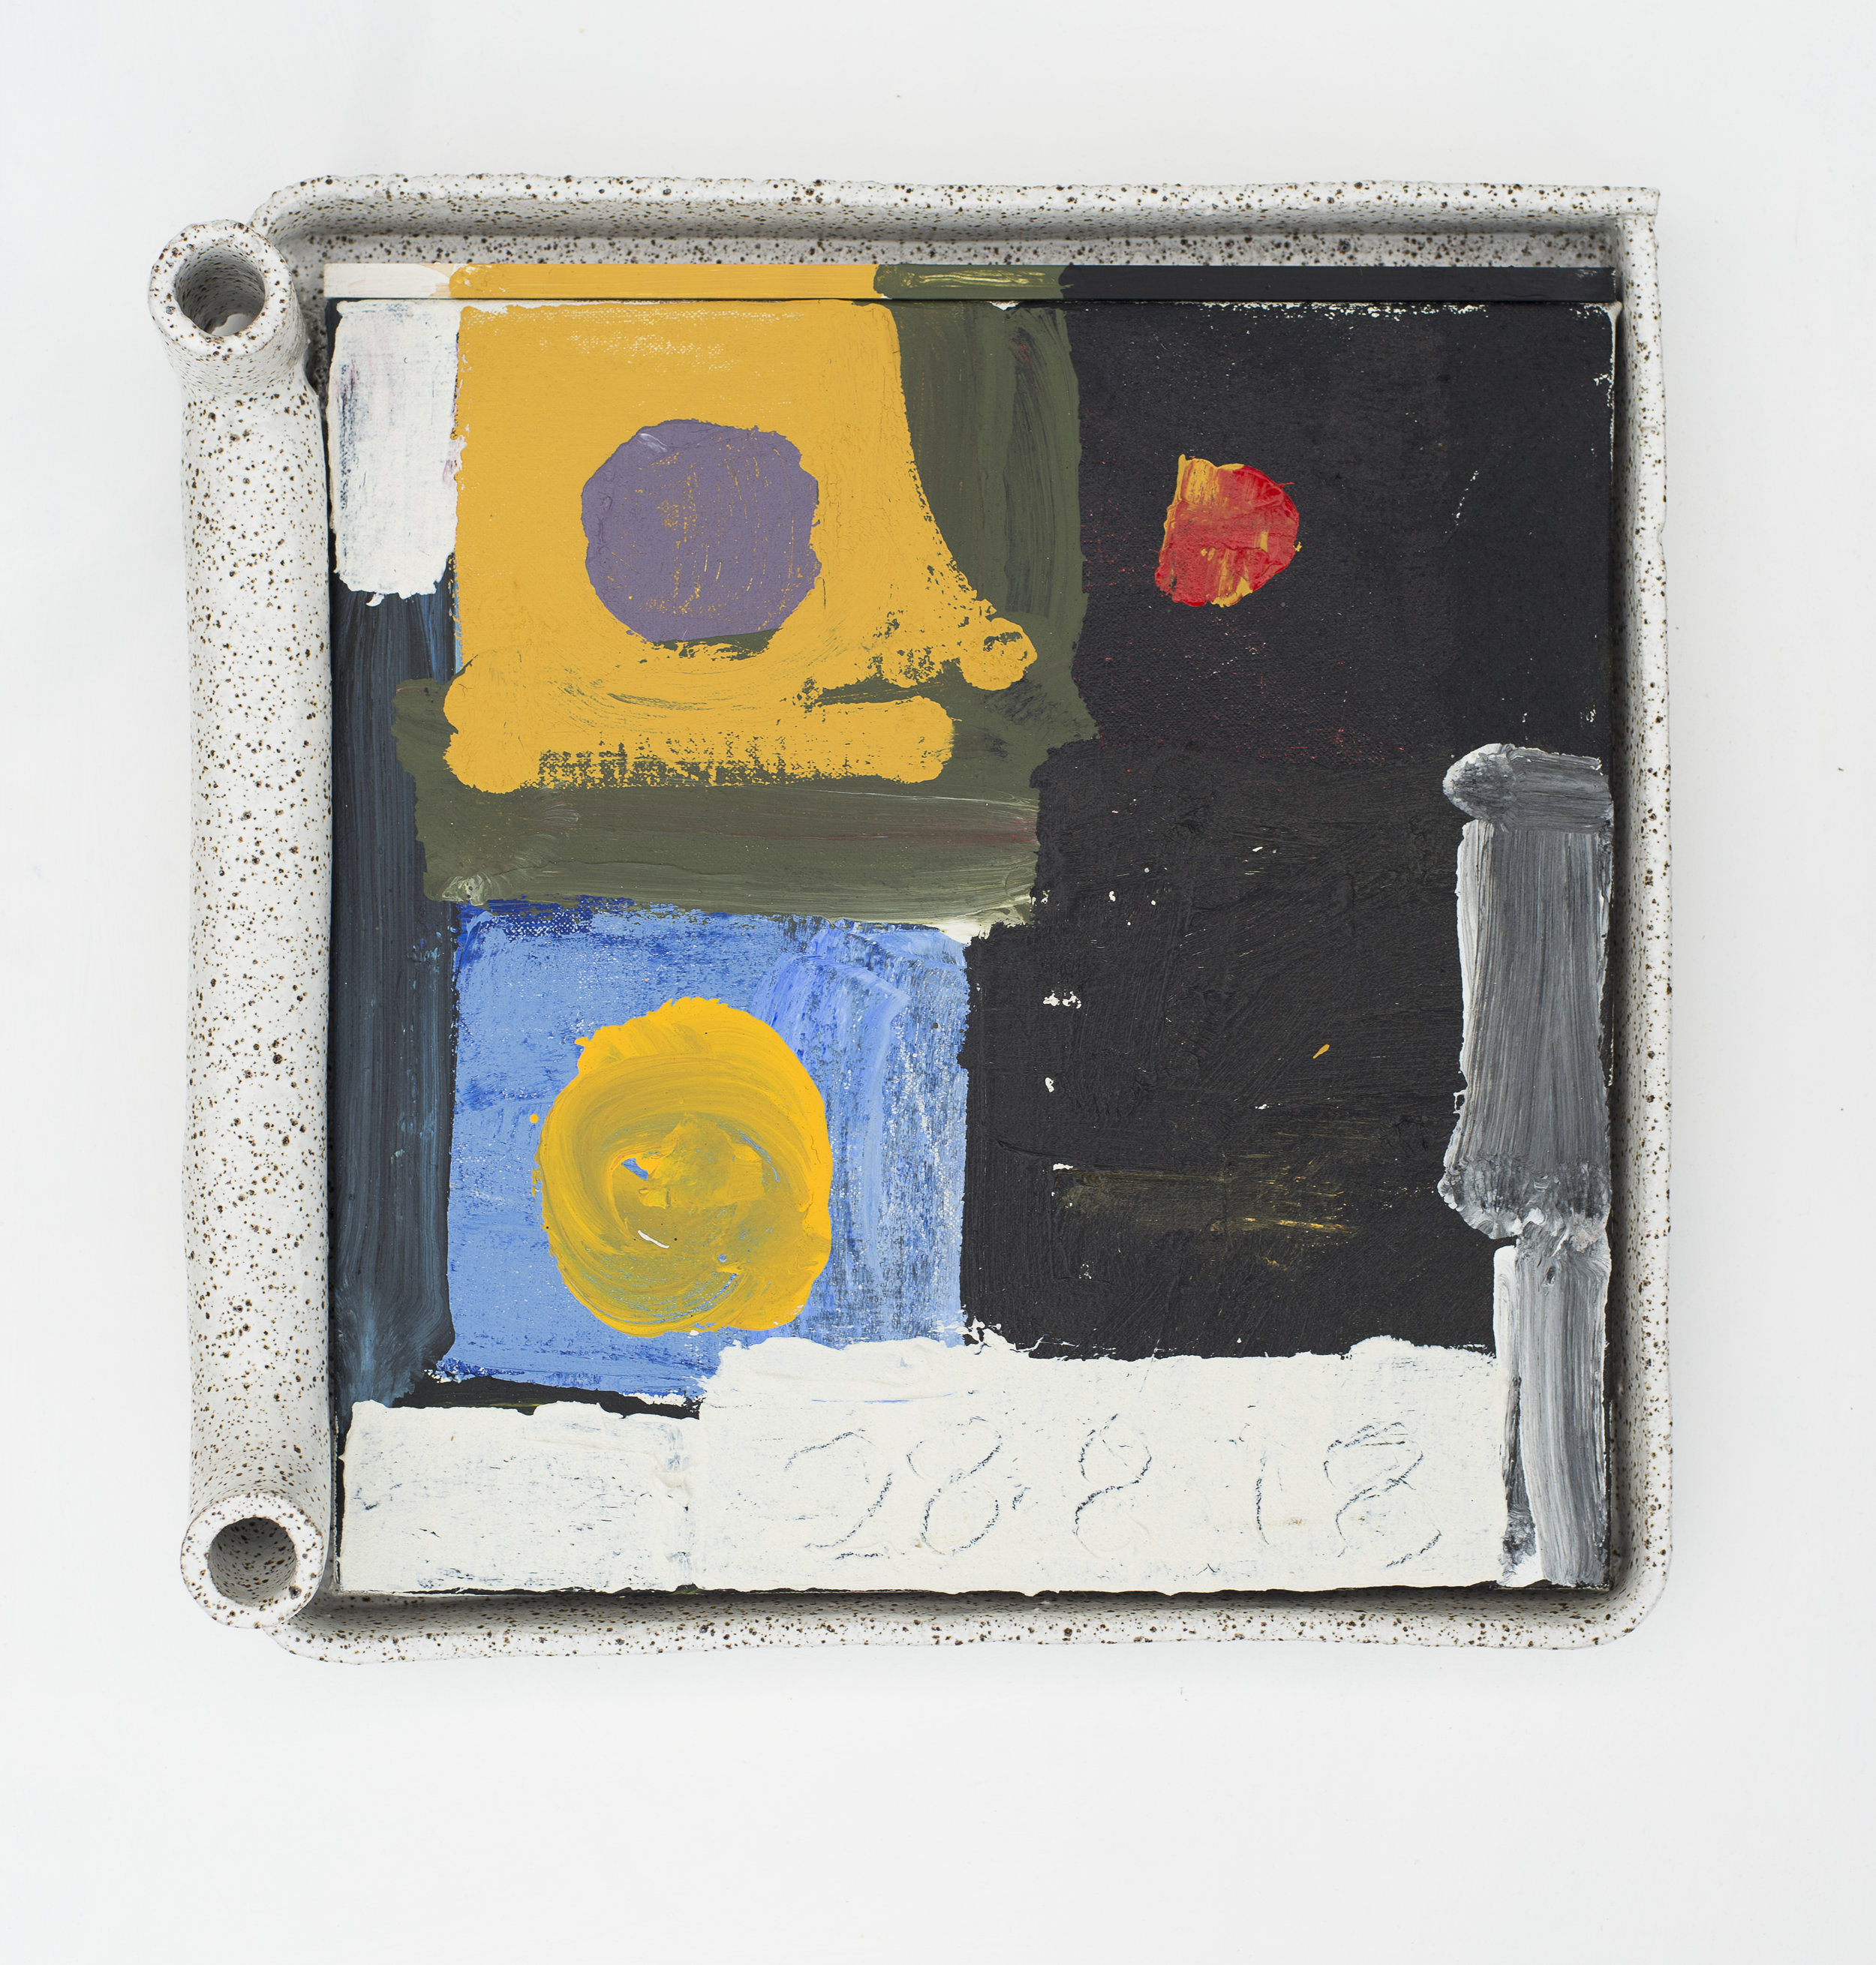 #0094  (2018) acrylic on linen, wood and glazed stoneware frame 44 x 43 x 11 cm